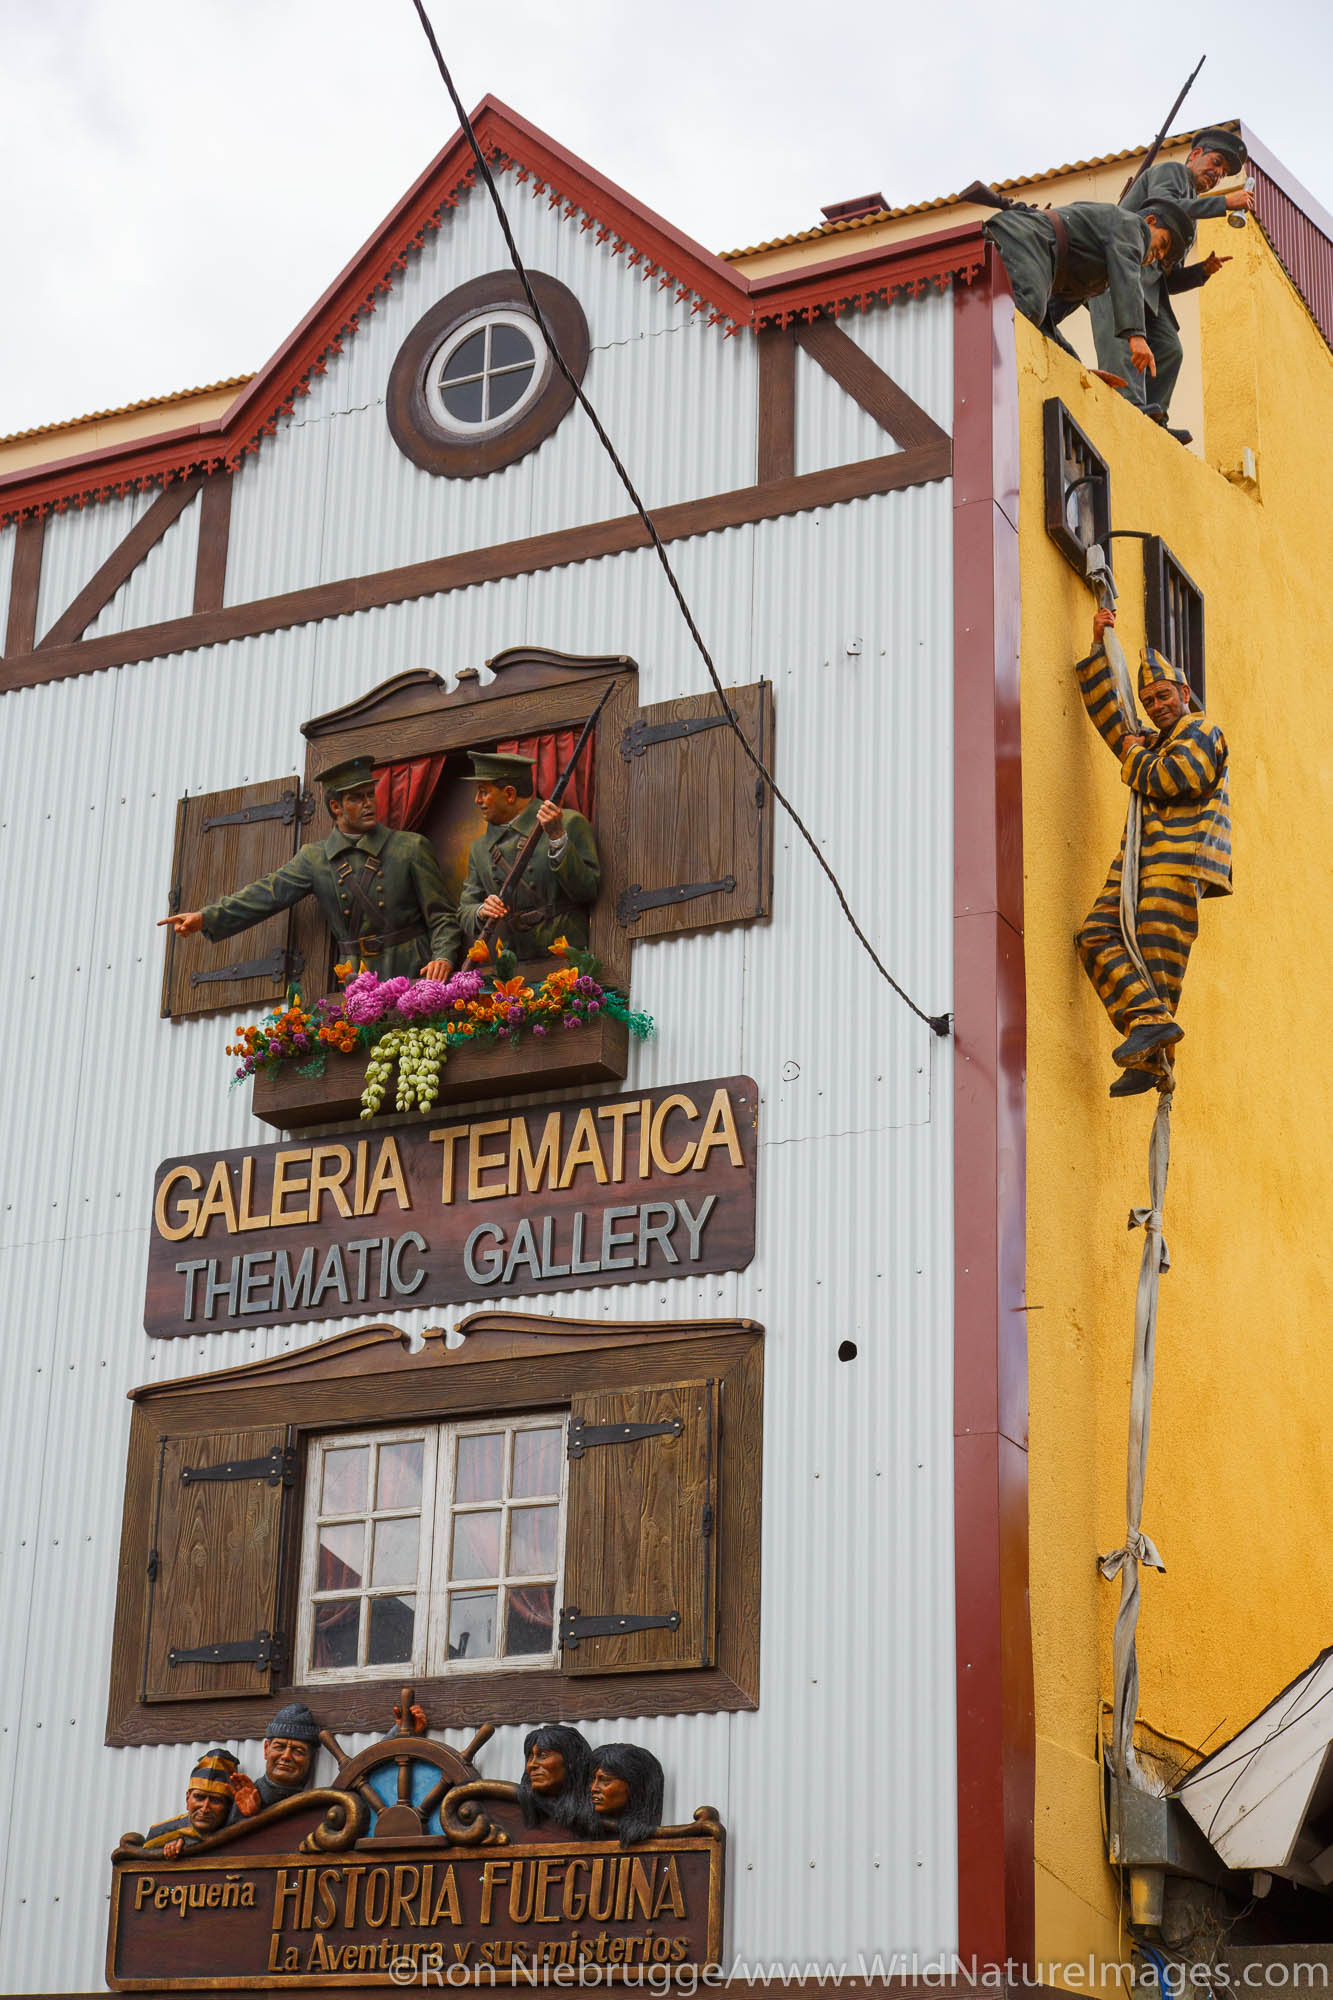 Thematic Gallery, Ushuaia, Argentina.